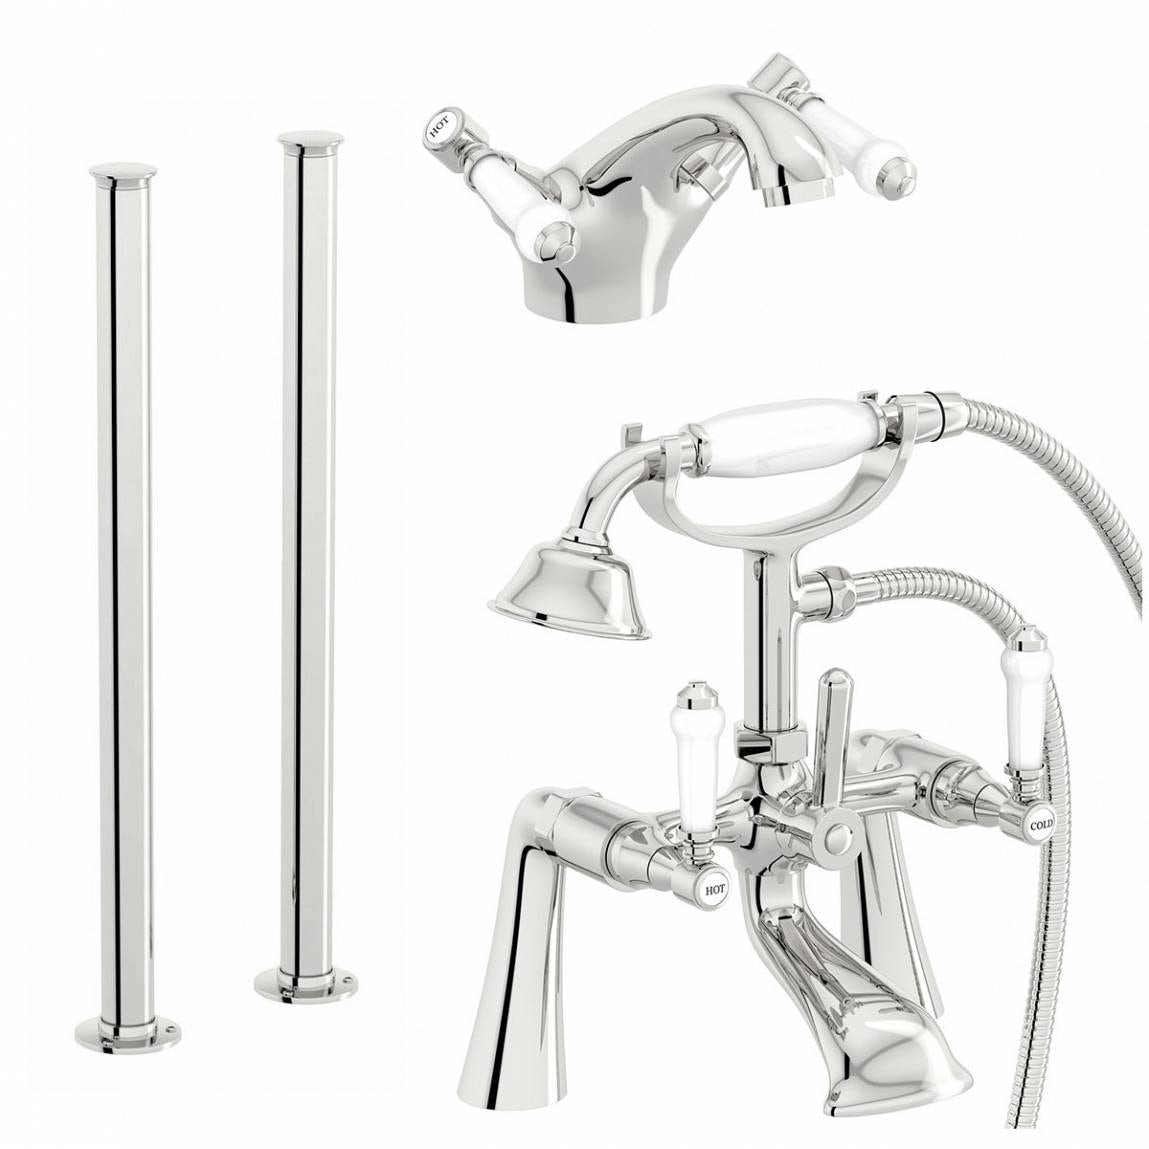 The Bath Co. Winchester basin and bath shower mixer standpipe pack